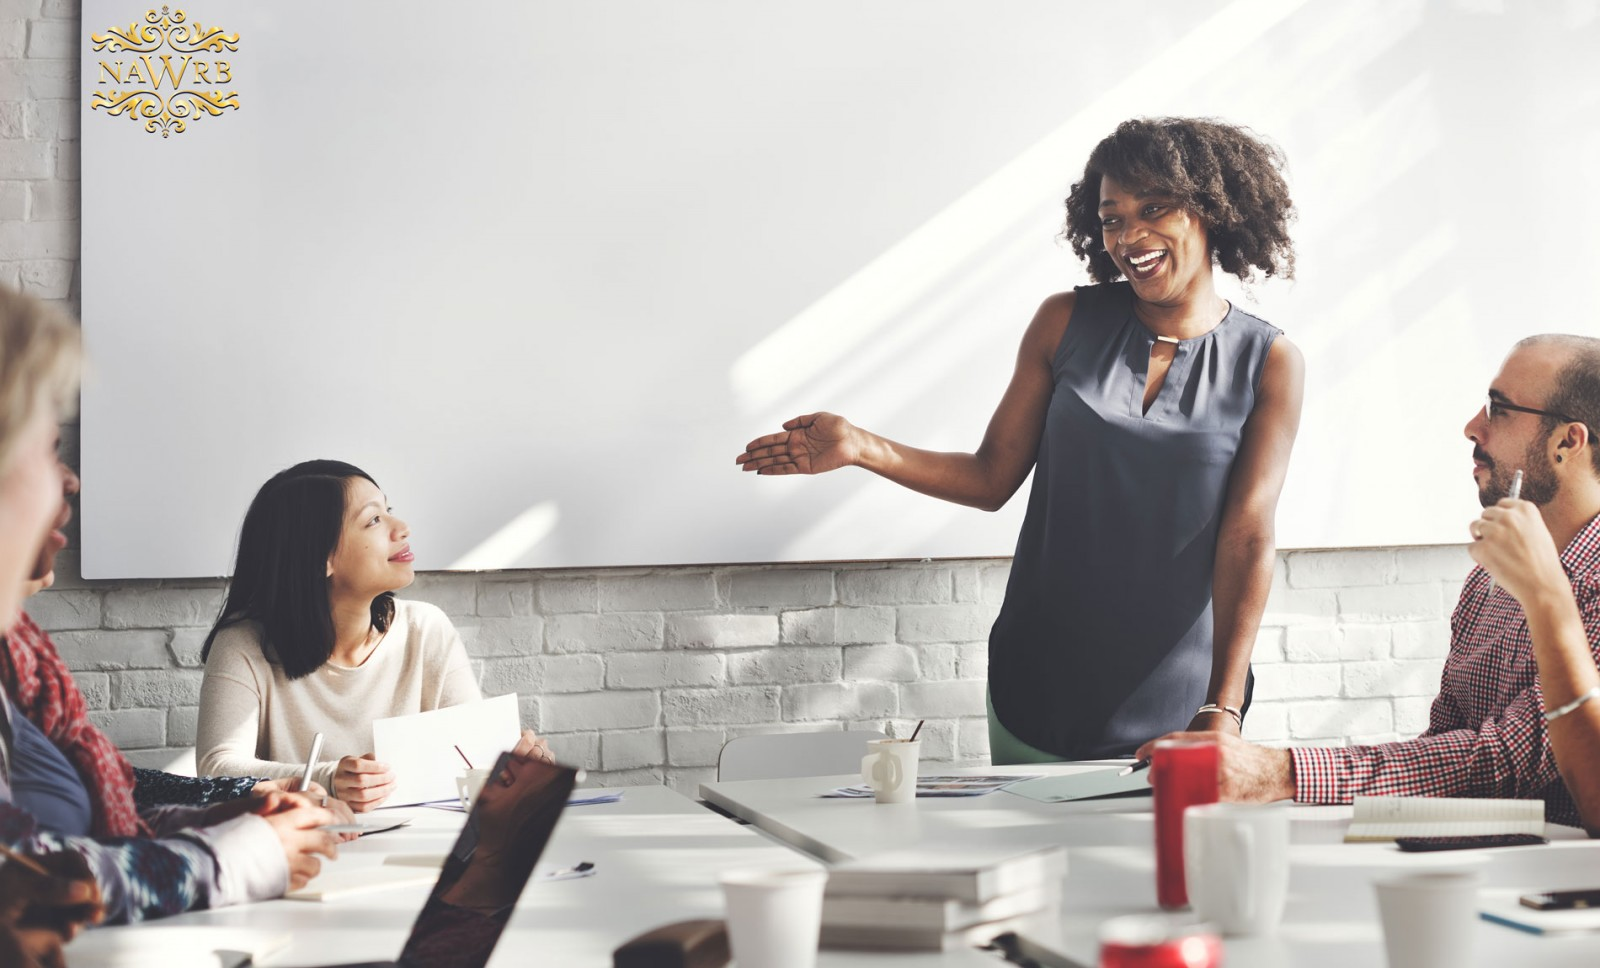 Top 5 Characteristics of Highly Successful Women